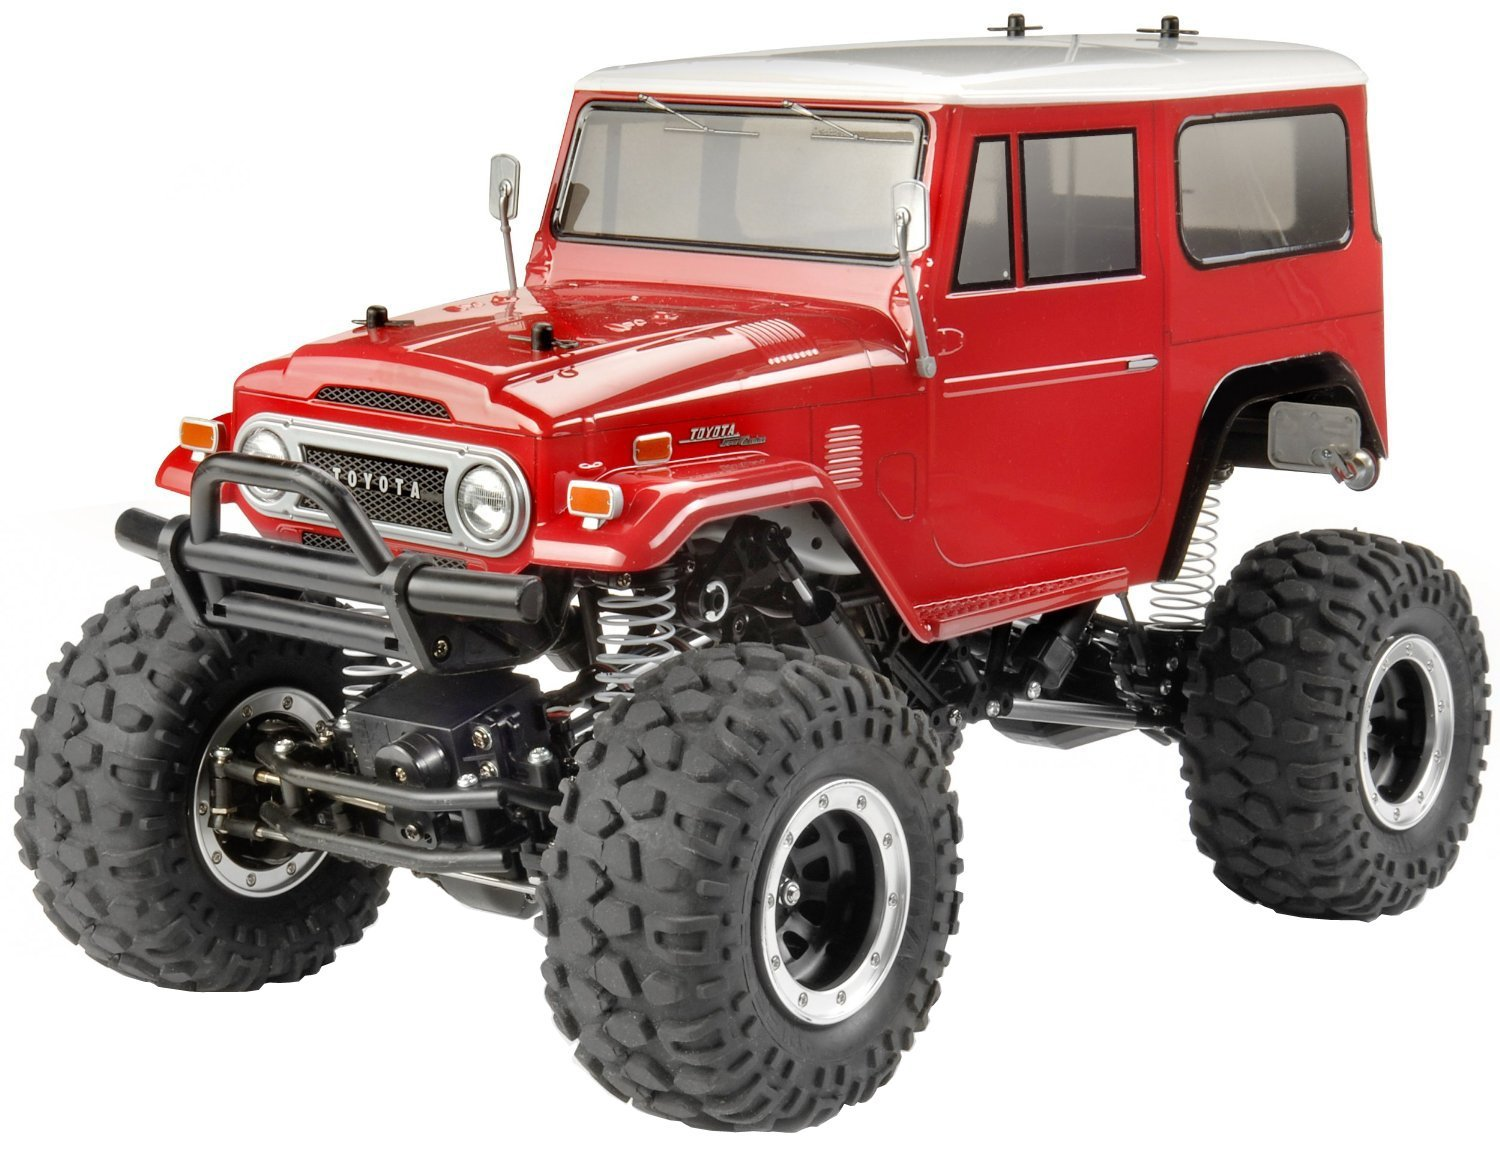 R/C Toyota Land Cruiser 40